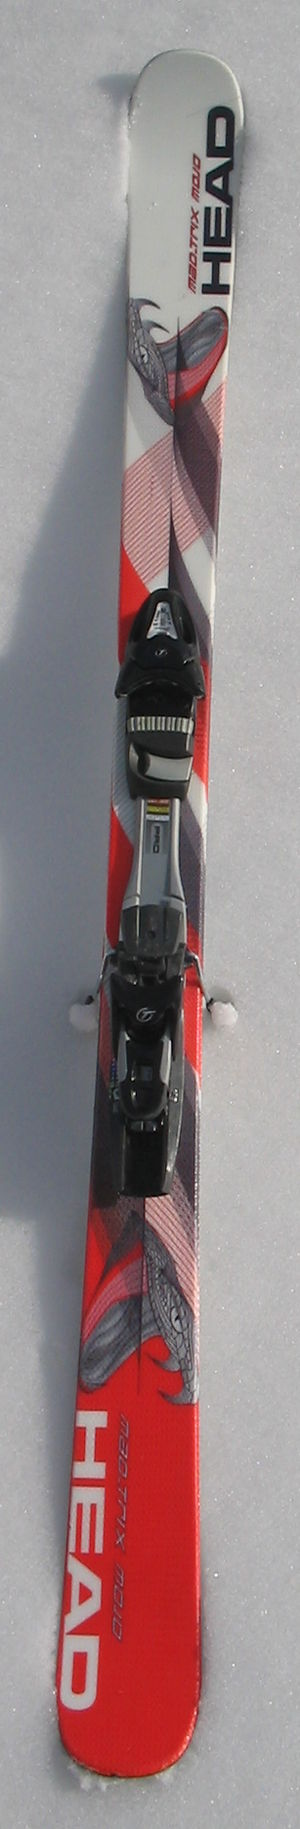 "Carve turn - A modern ""parabolic"" ski. It is narrower at the binding than at the ends, and allows for easier carve turns."